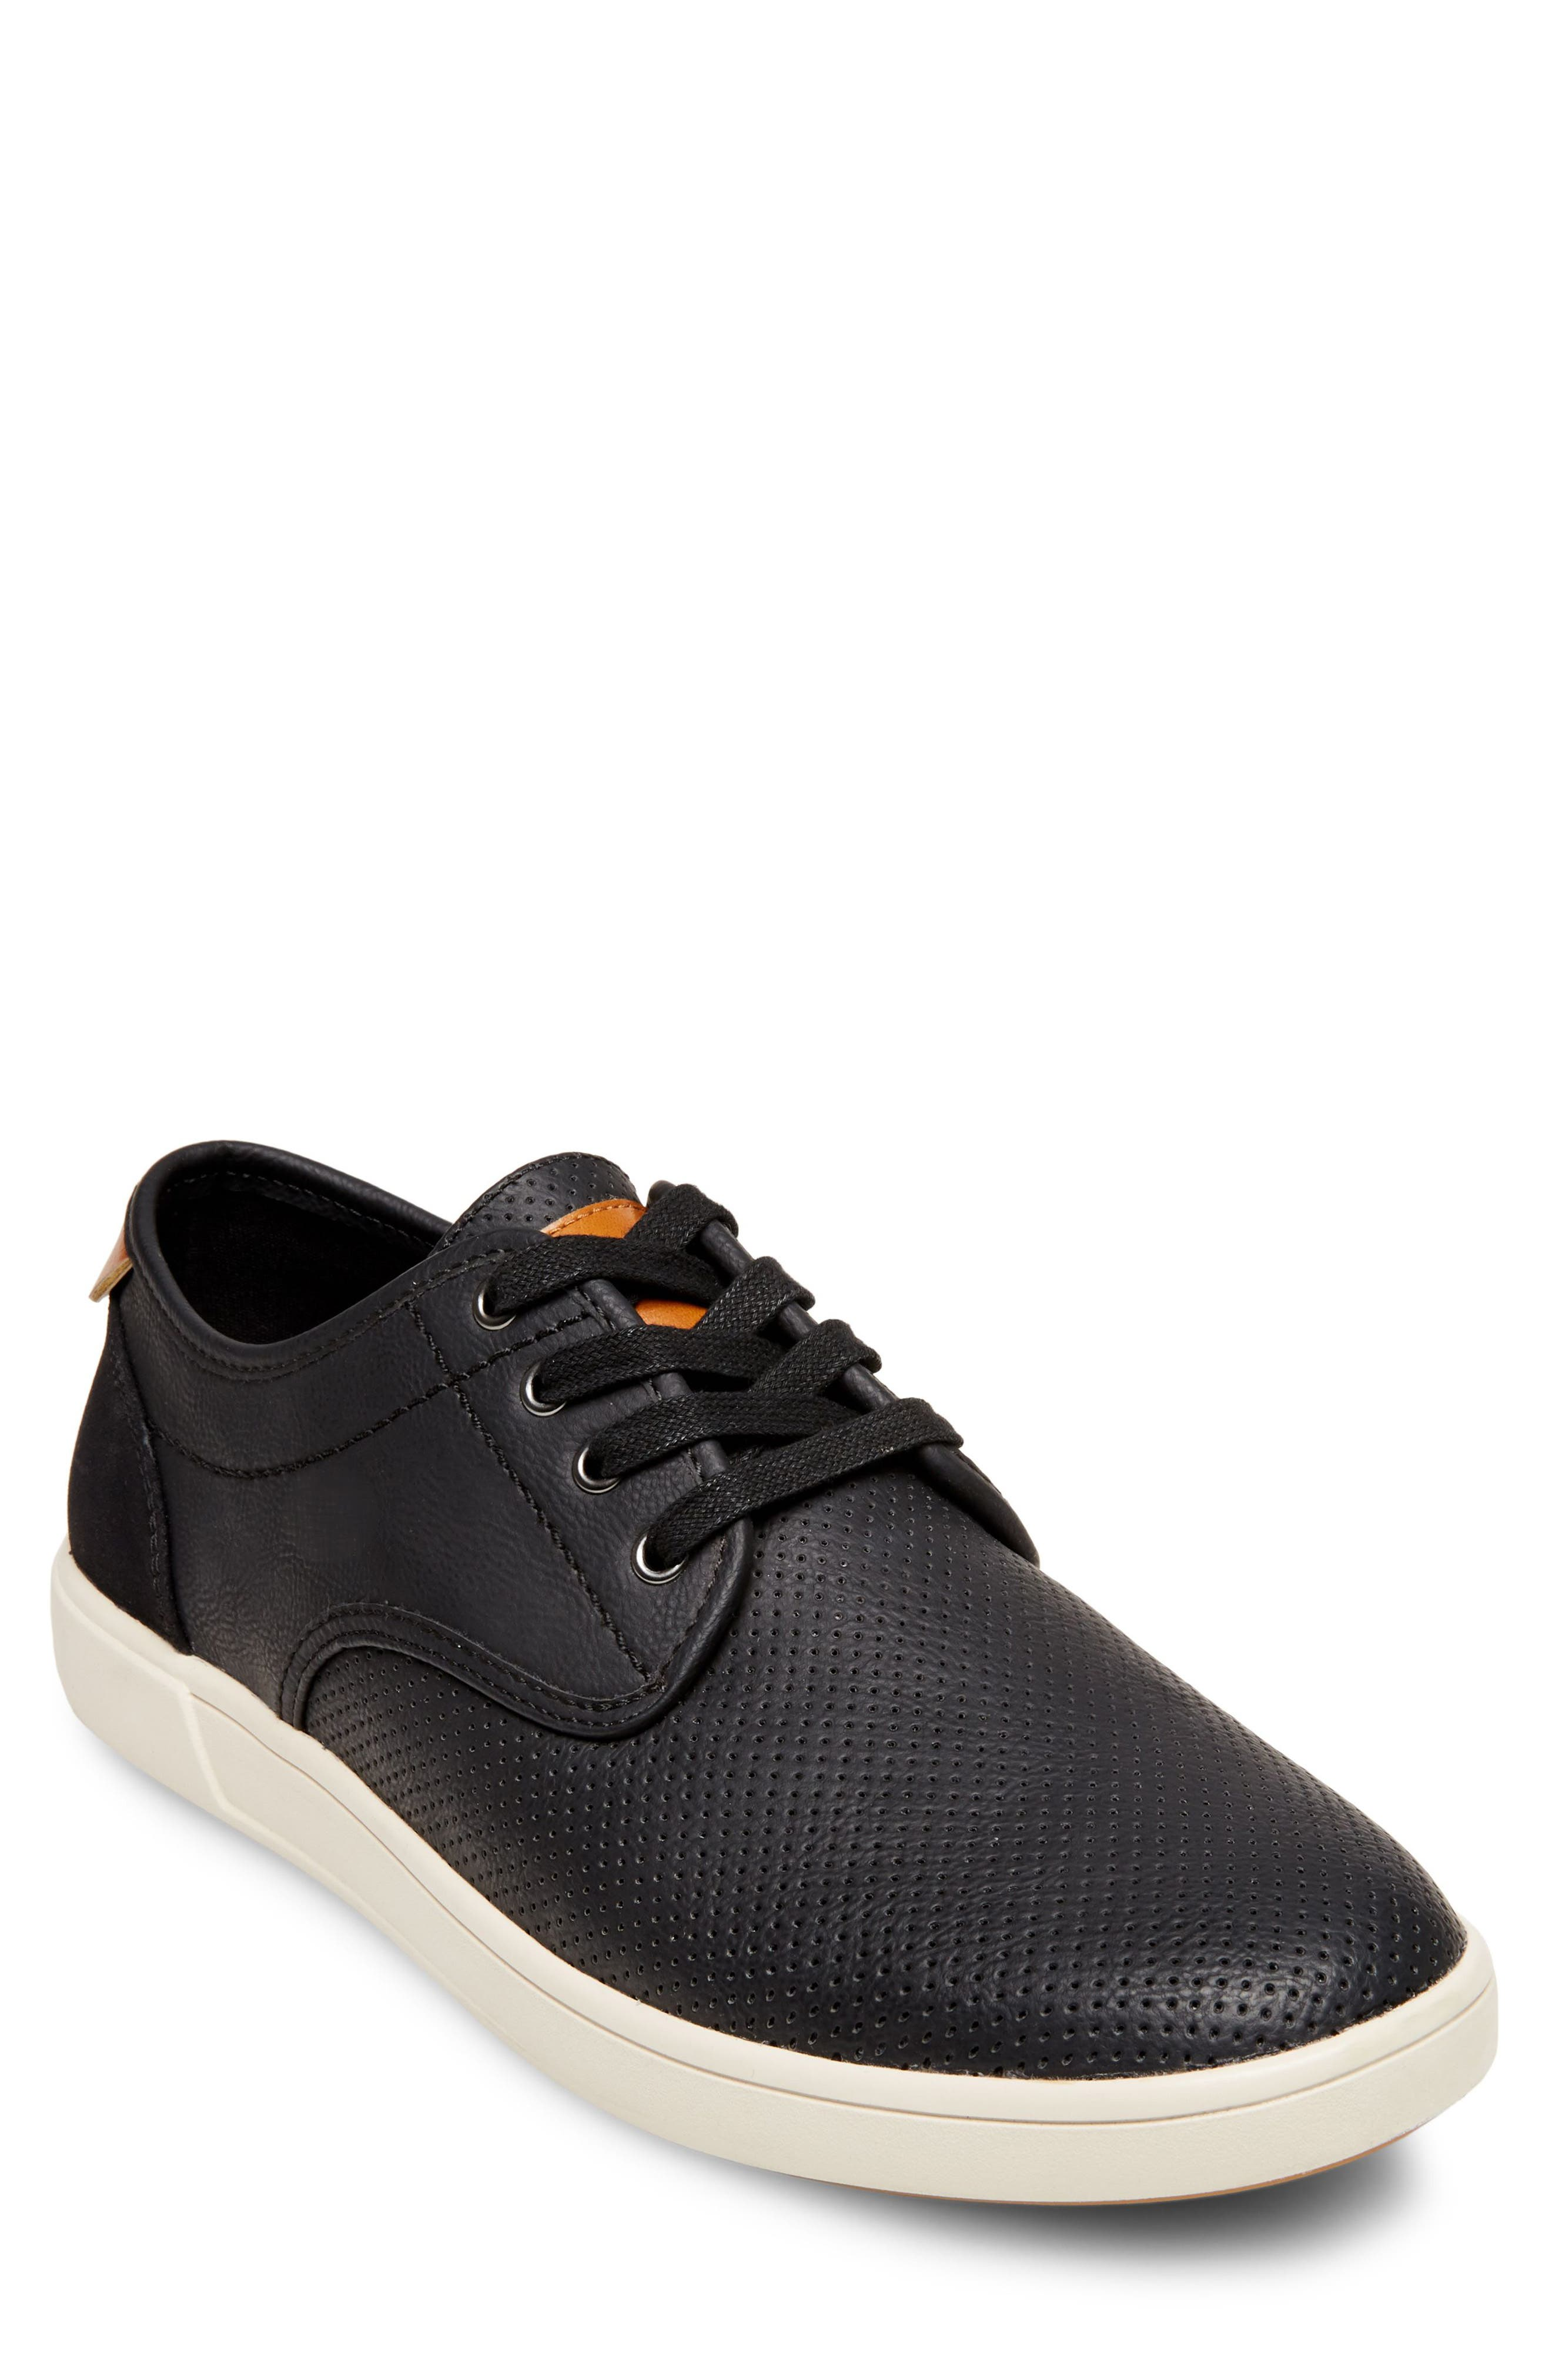 Flyerz Perforated Sneaker,                             Main thumbnail 1, color,                             BLACK LEATHER